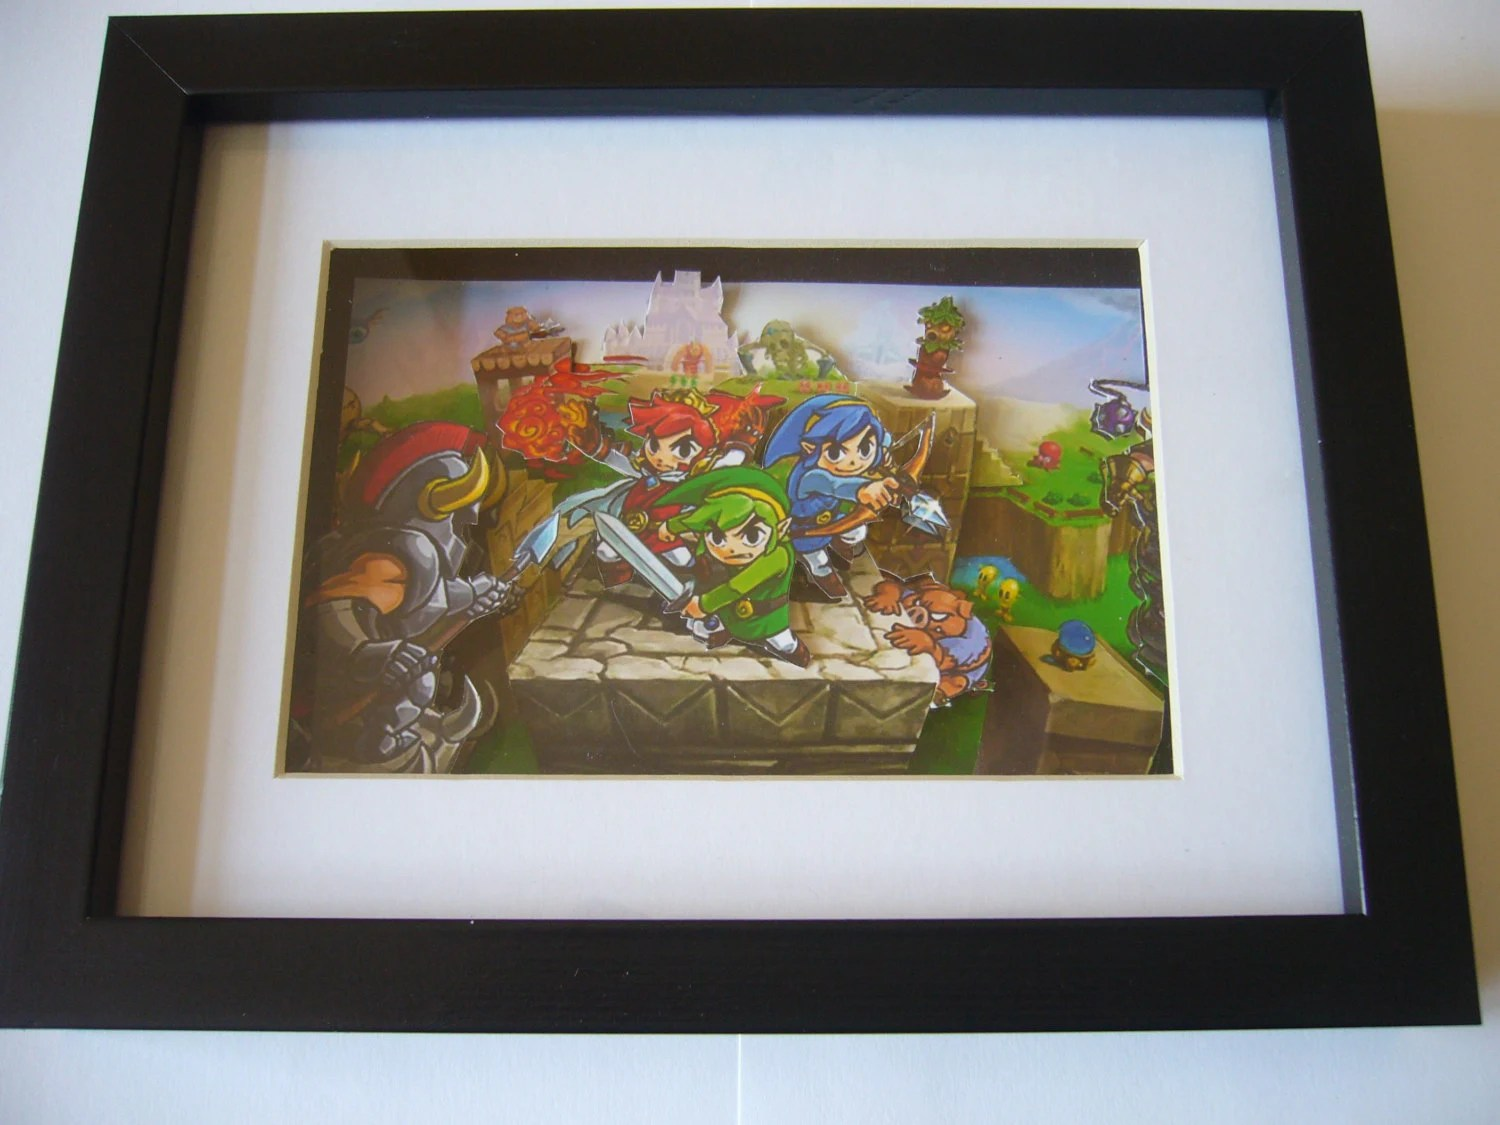 Legend Of Zelda Triforce Heroes 3d Shadow Box Diorama Art